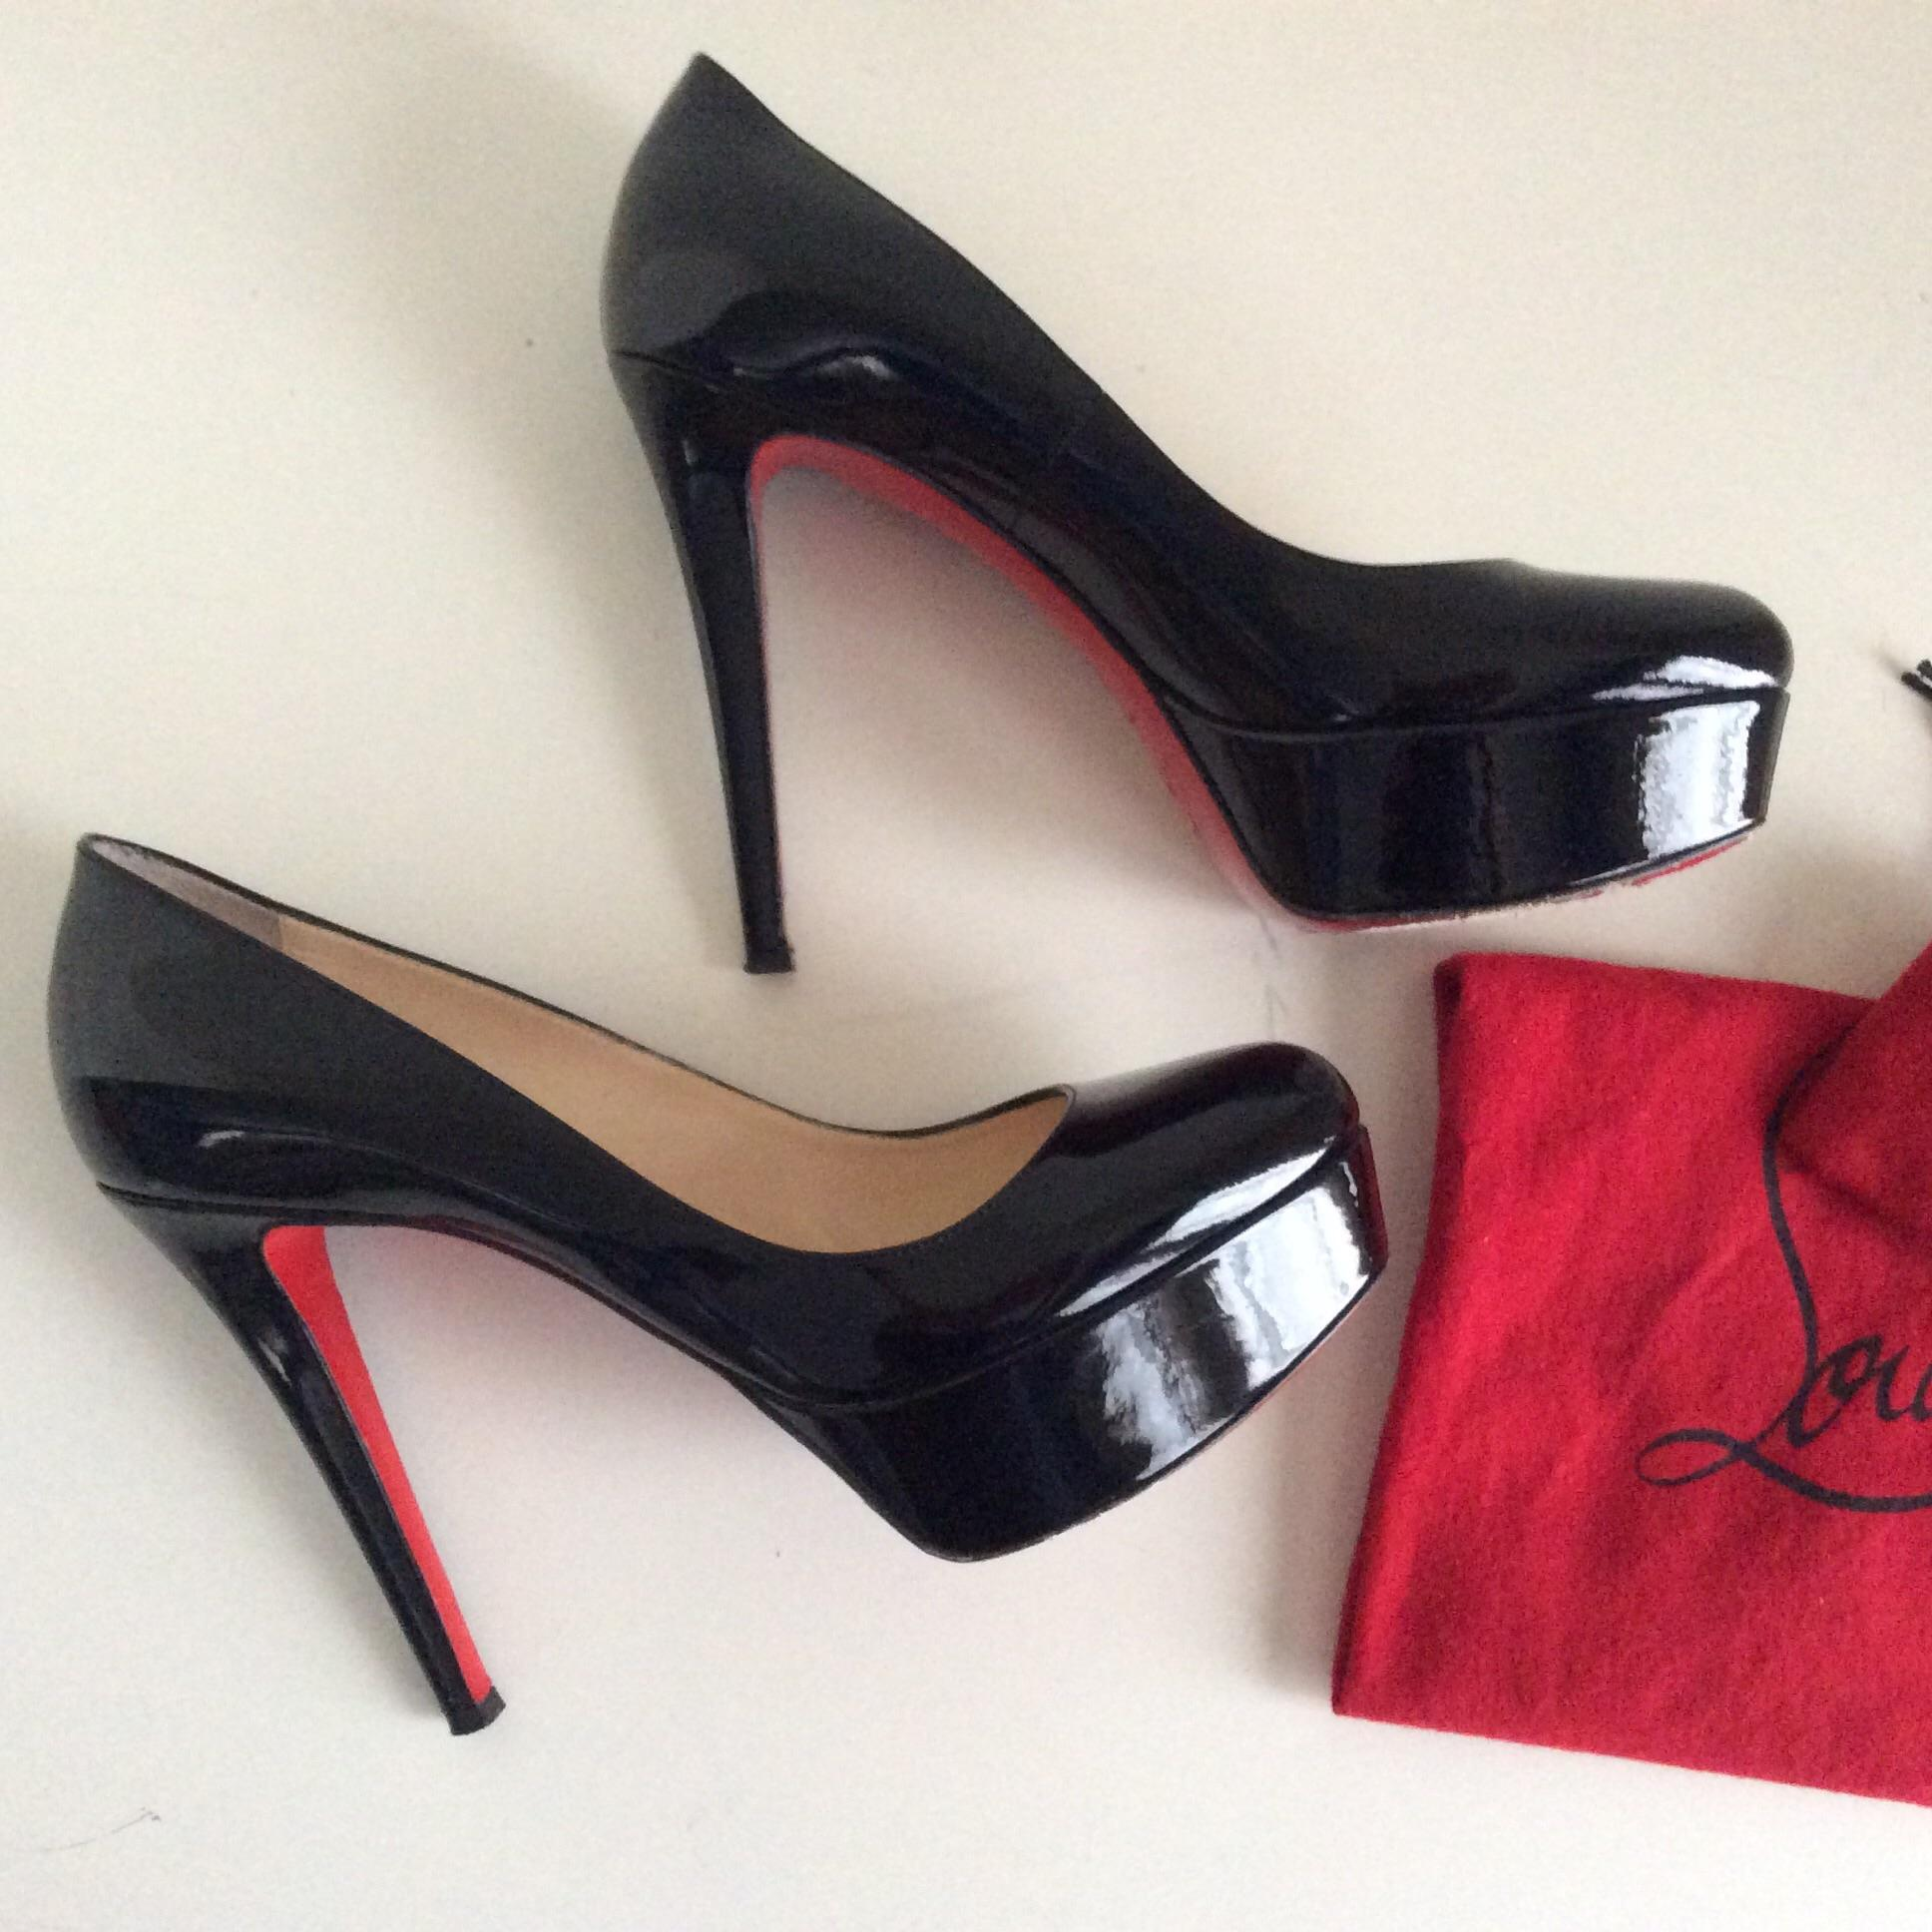 official photos 9efaa 0ab7d Christian Louboutin Black Bianca 120 Mm Patent Leather Pumps ...